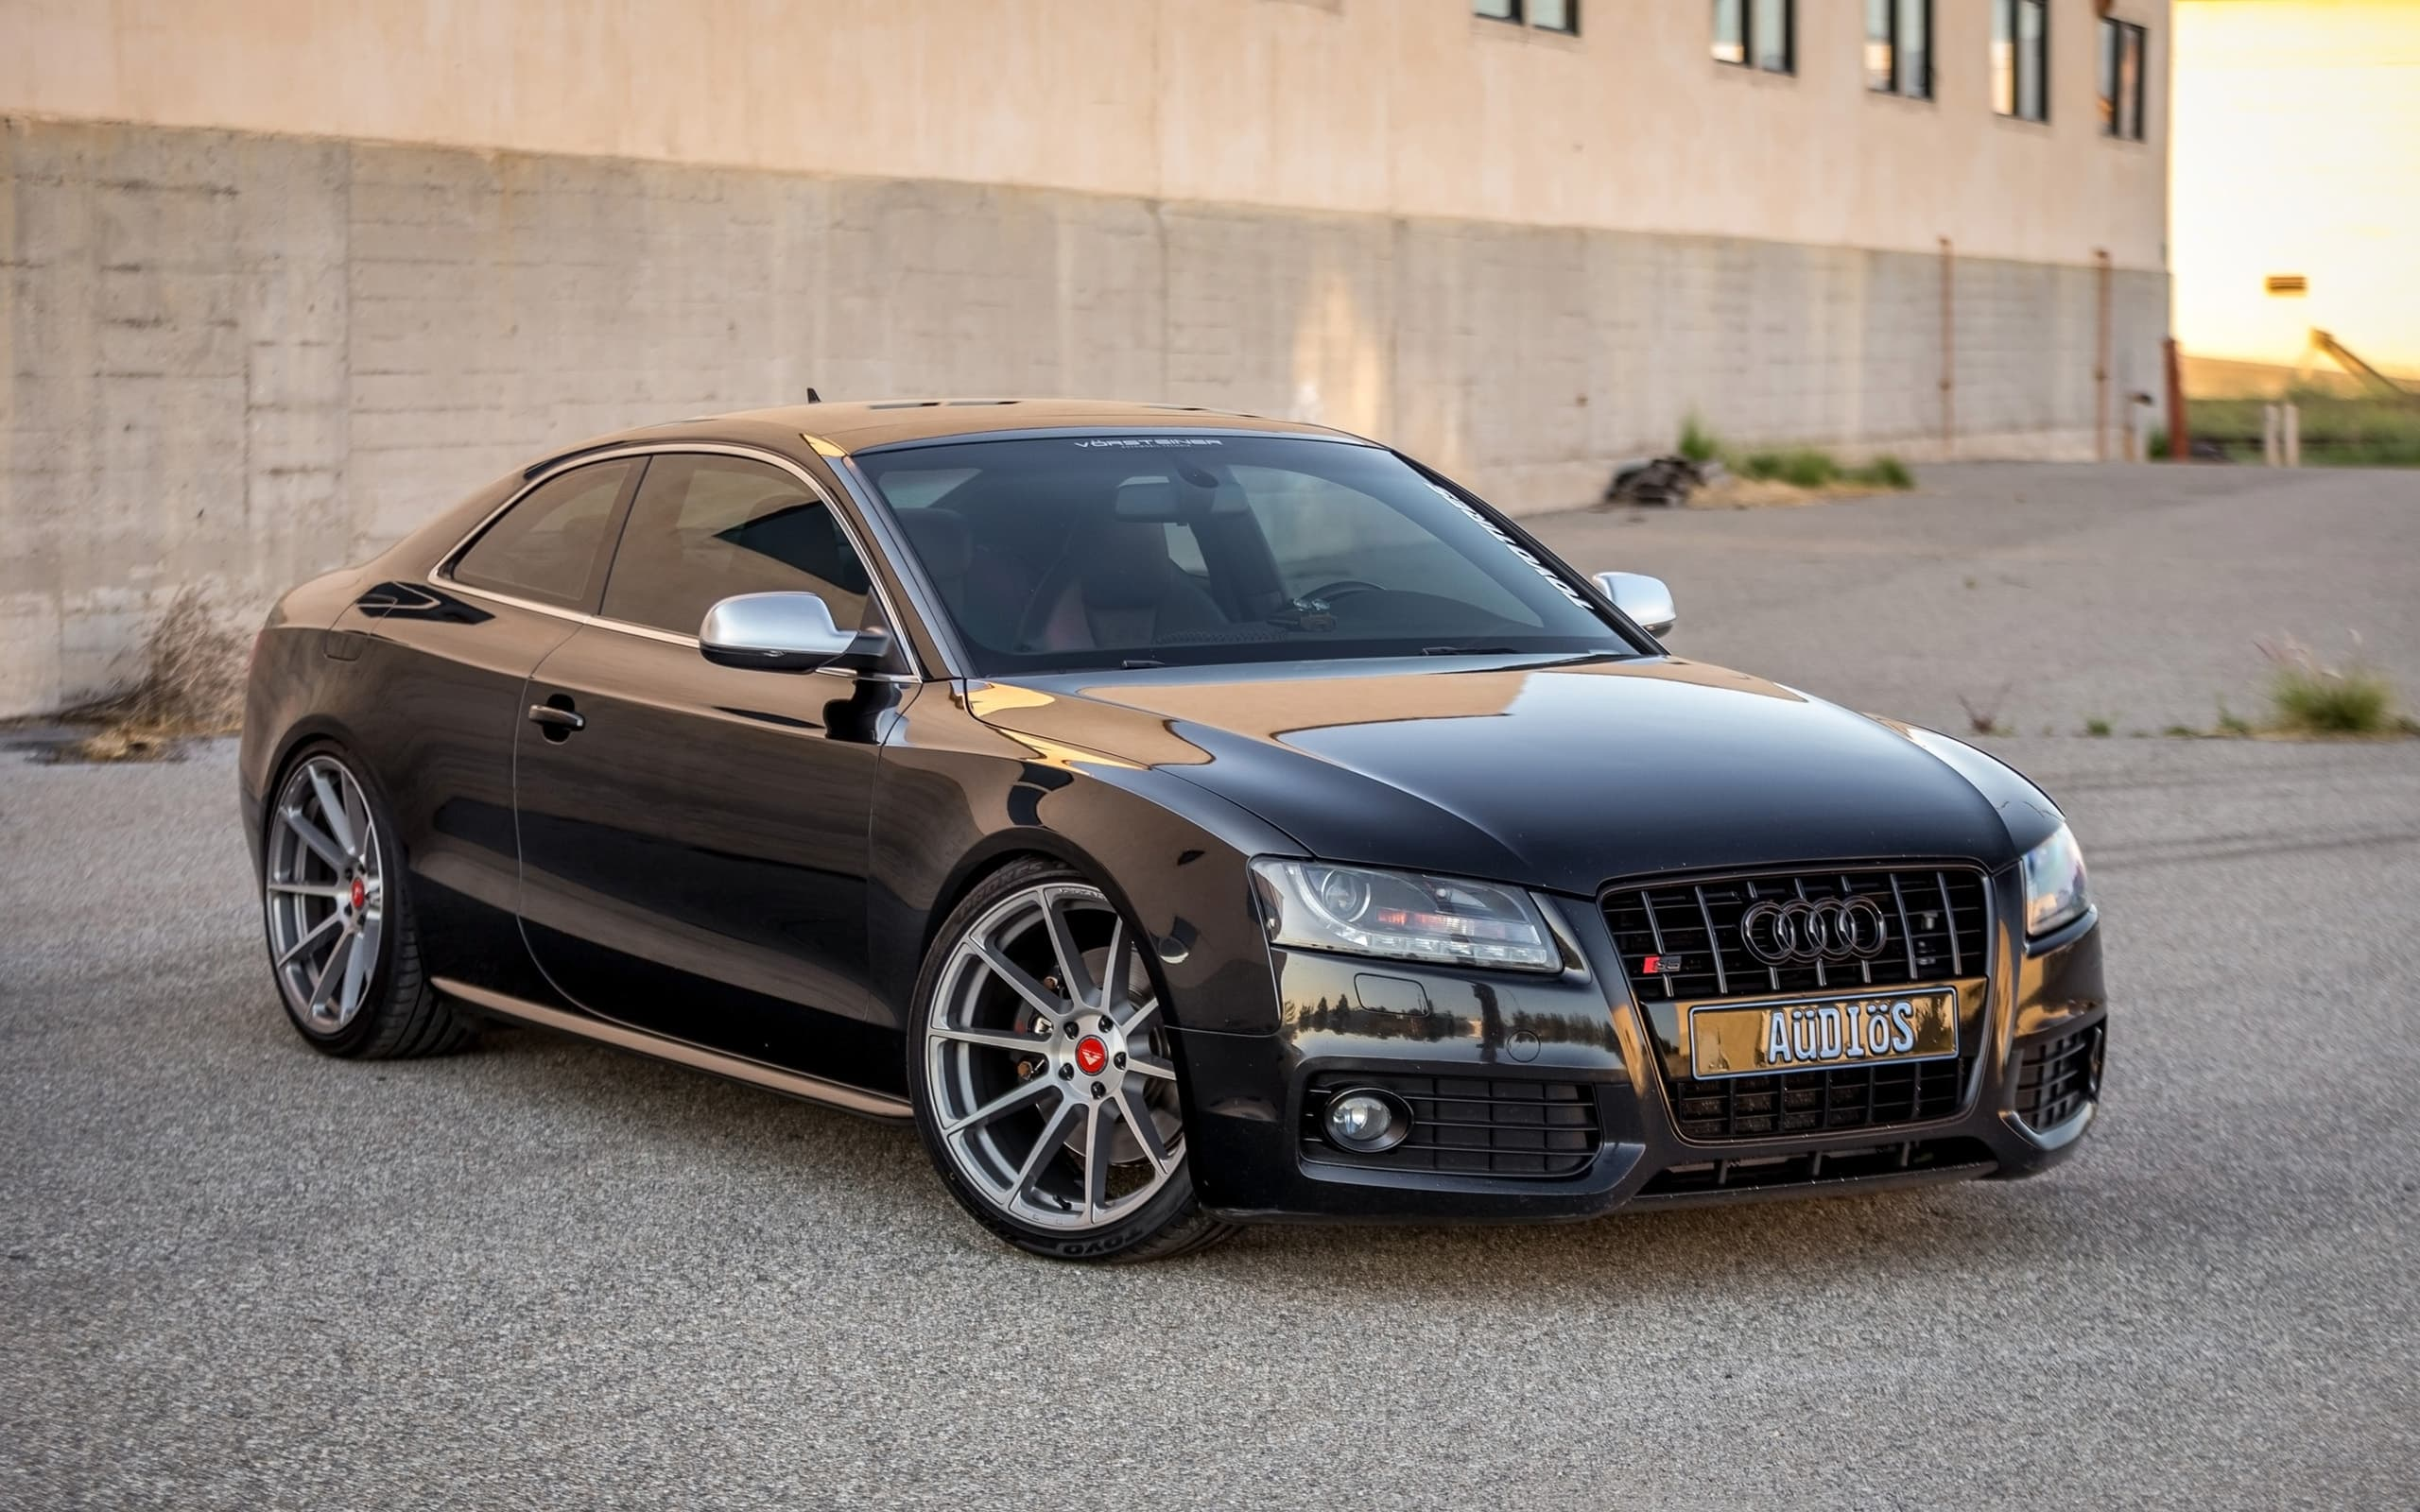 audi b8 s5 2016 wallpapers hd black tuning high quality. Black Bedroom Furniture Sets. Home Design Ideas